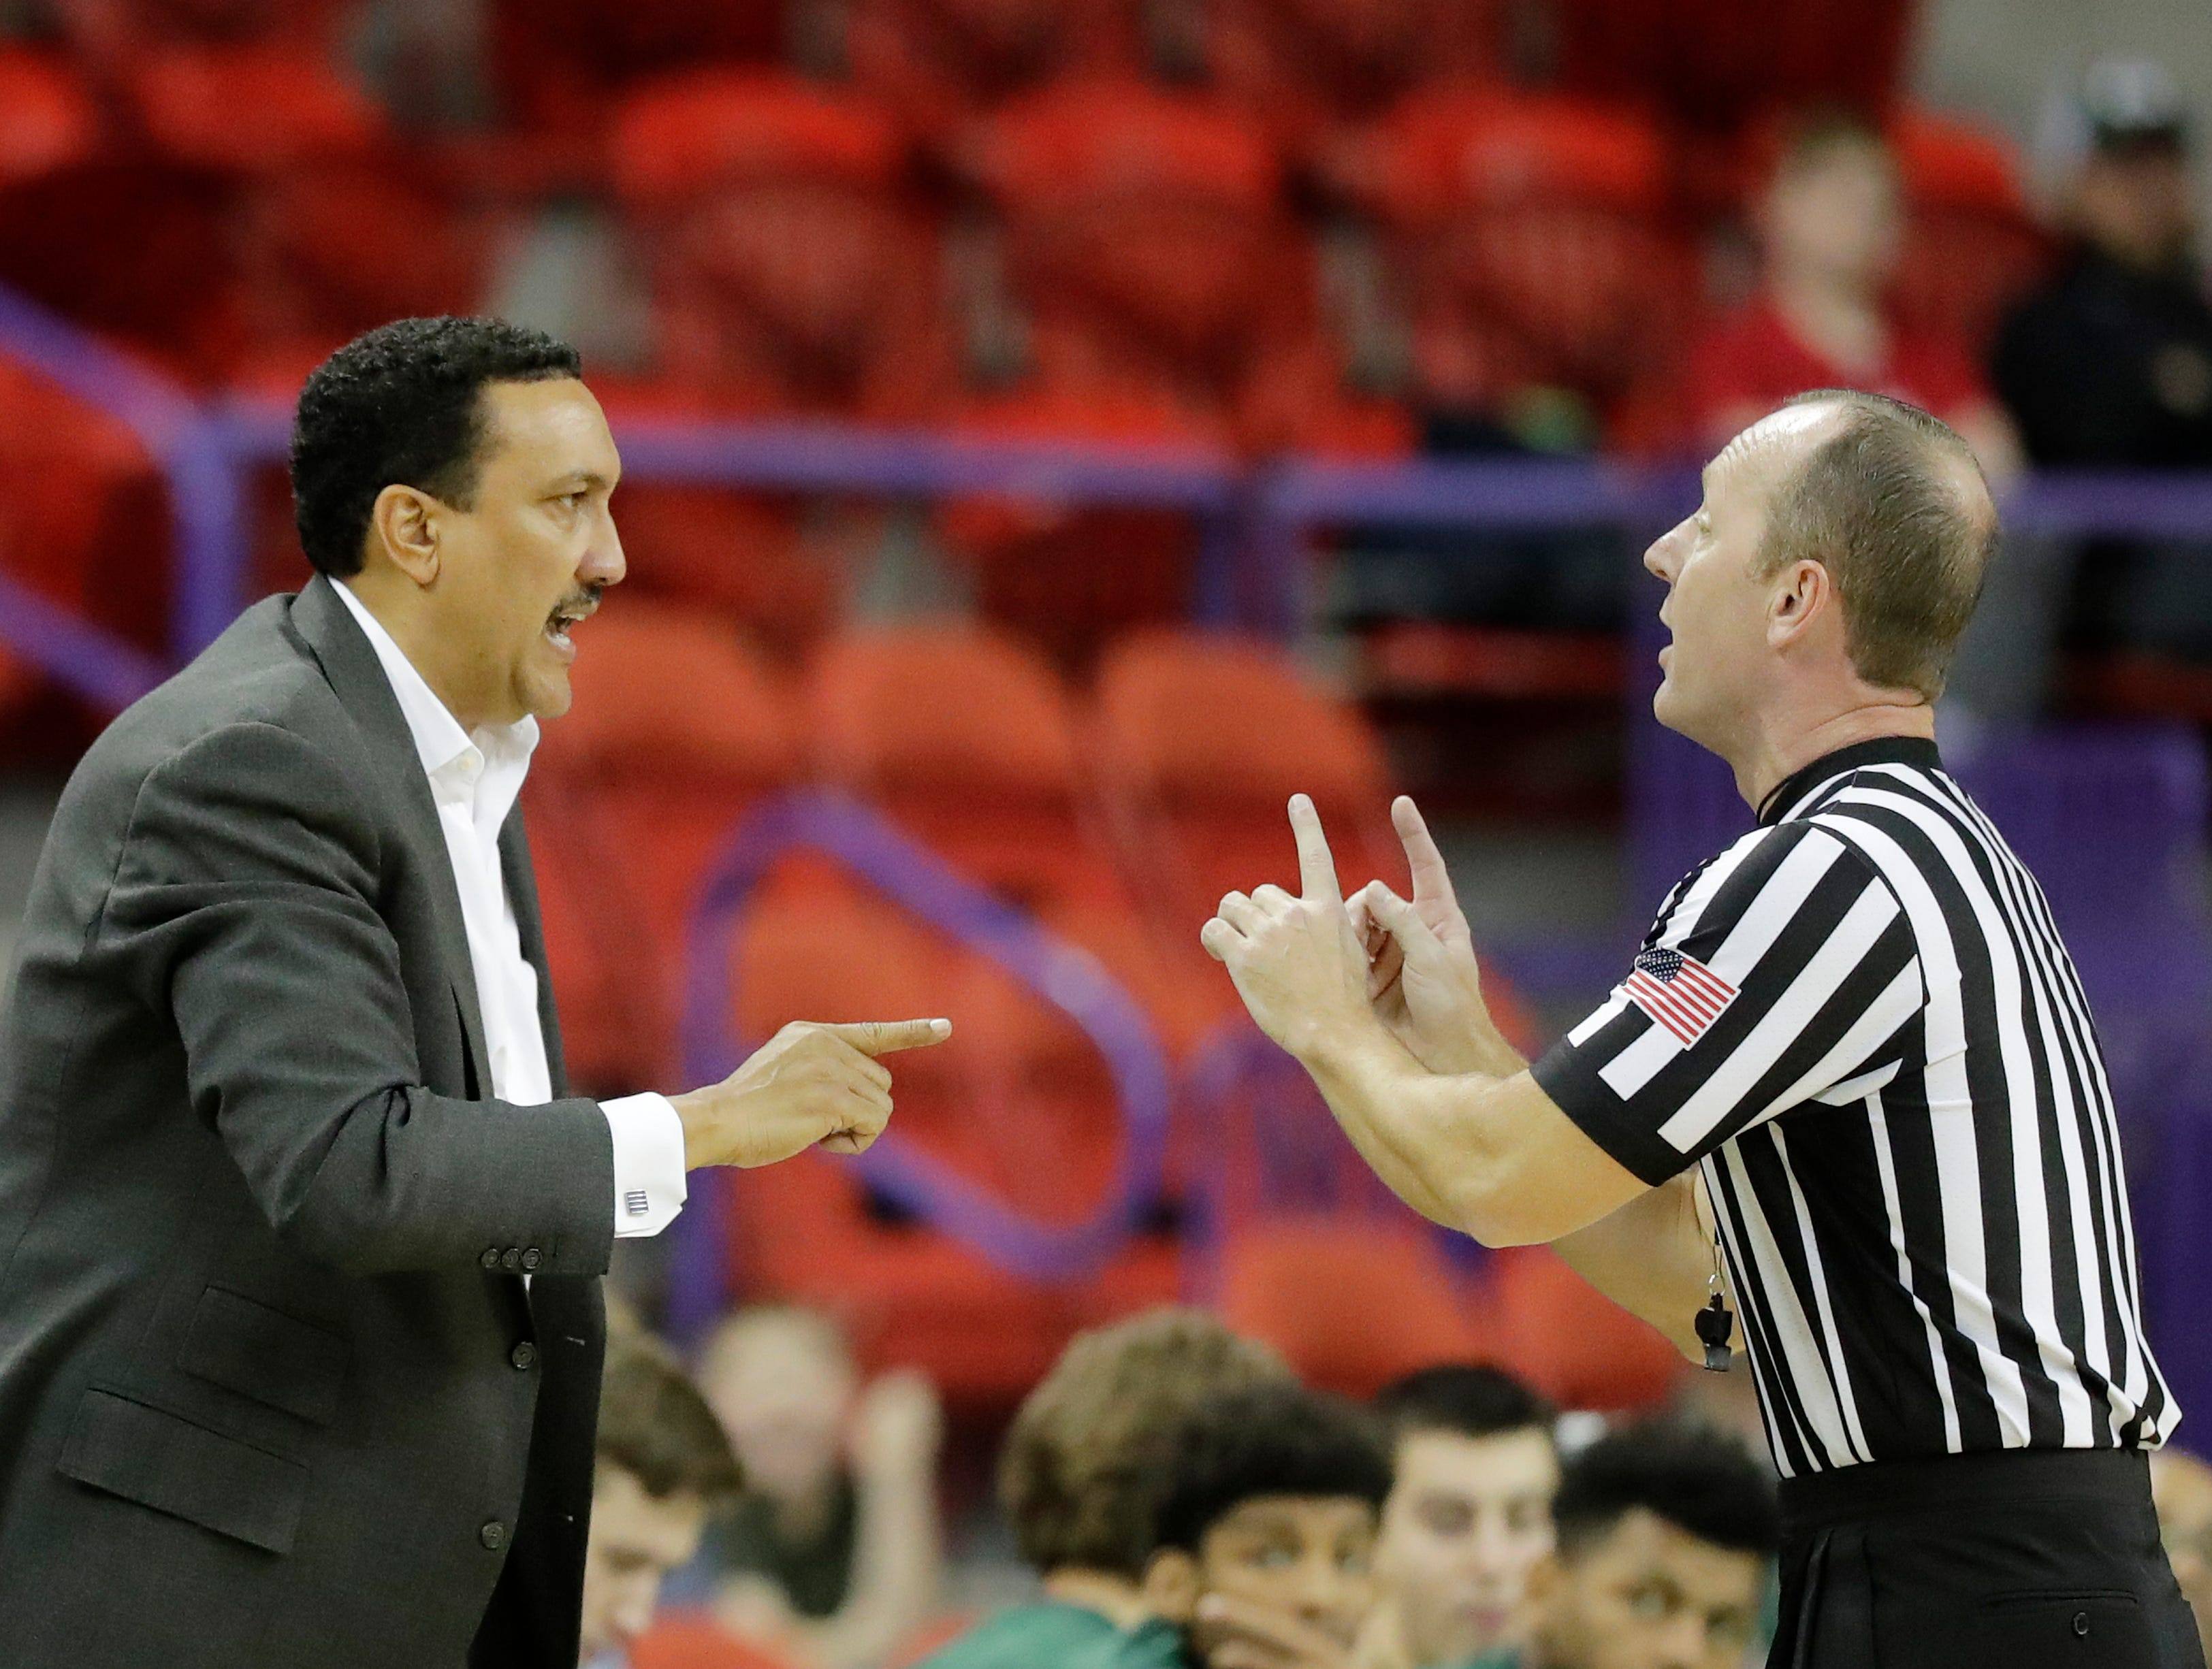 Cleveland State Vikings head coach Dennis Felton talks with a referee during a Horizon League basketball game at the Resch Center on Saturday, January 5, 2019 in Green Bay, Wis.